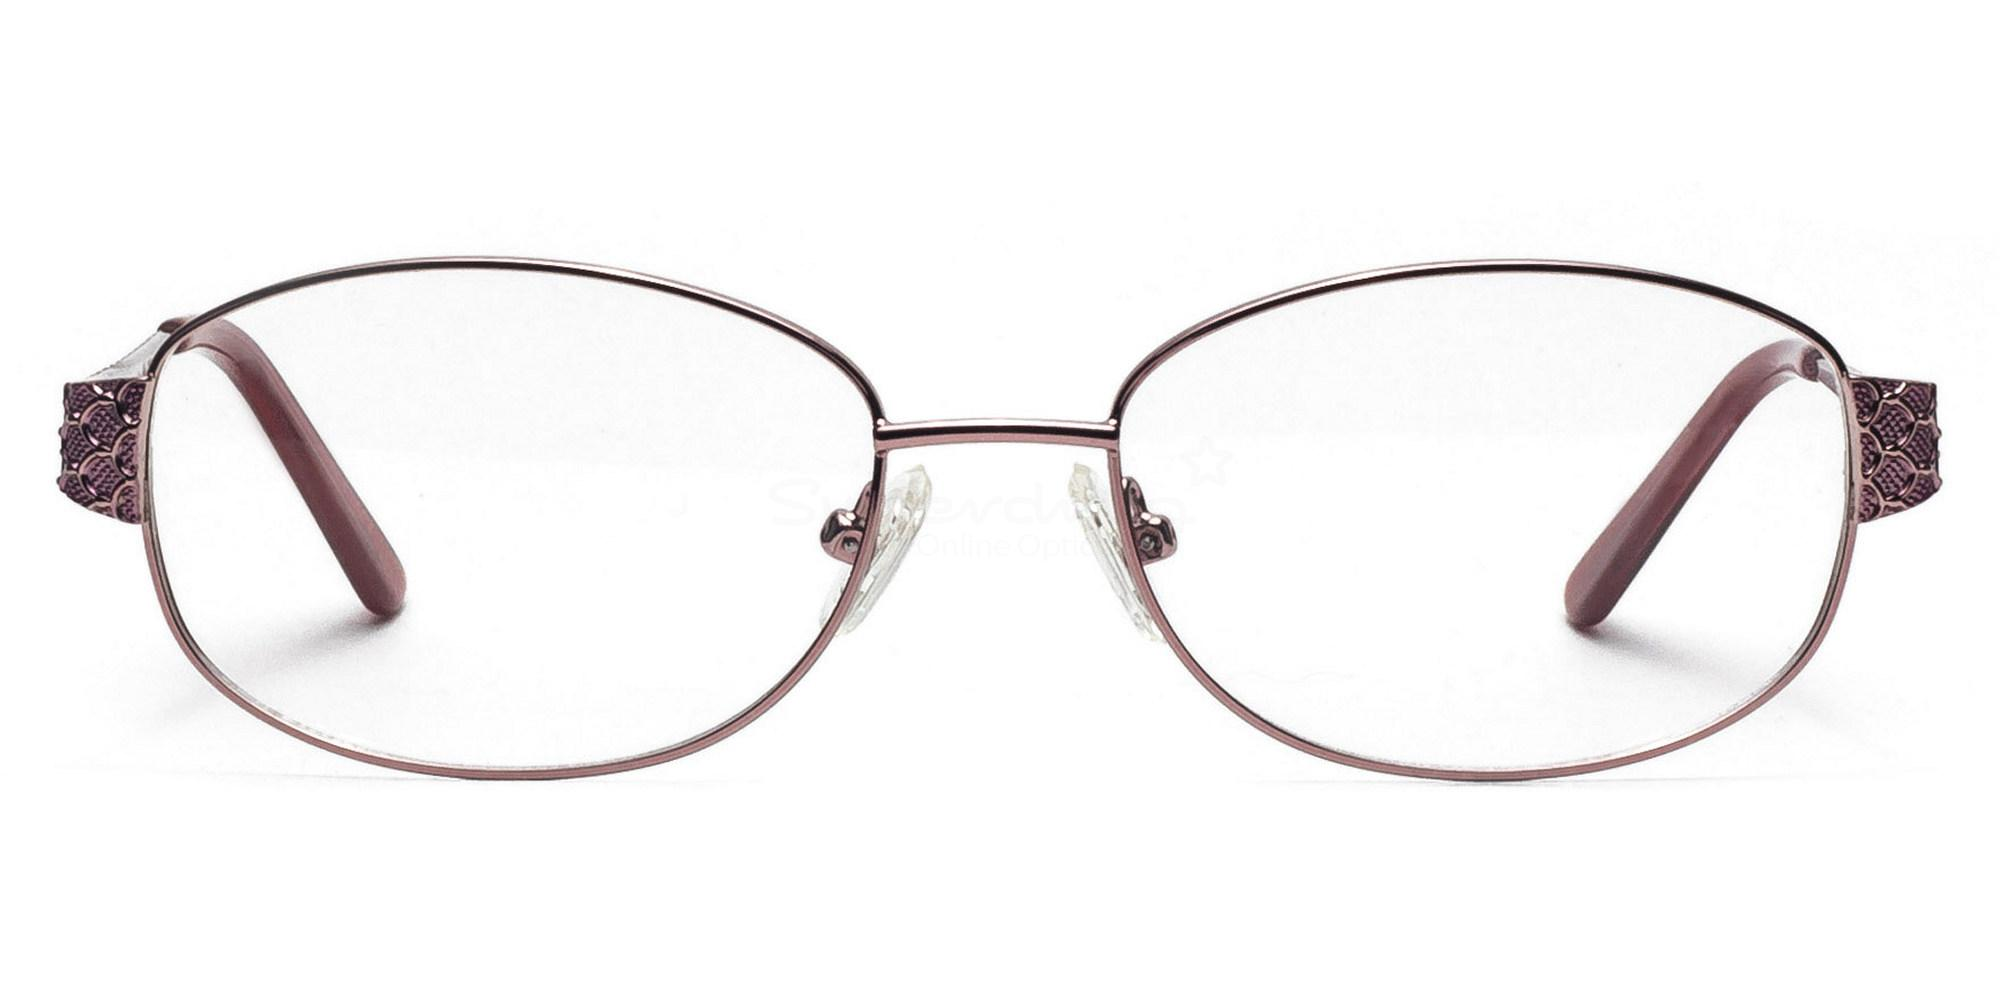 C1 SRM004 Glasses, Indium